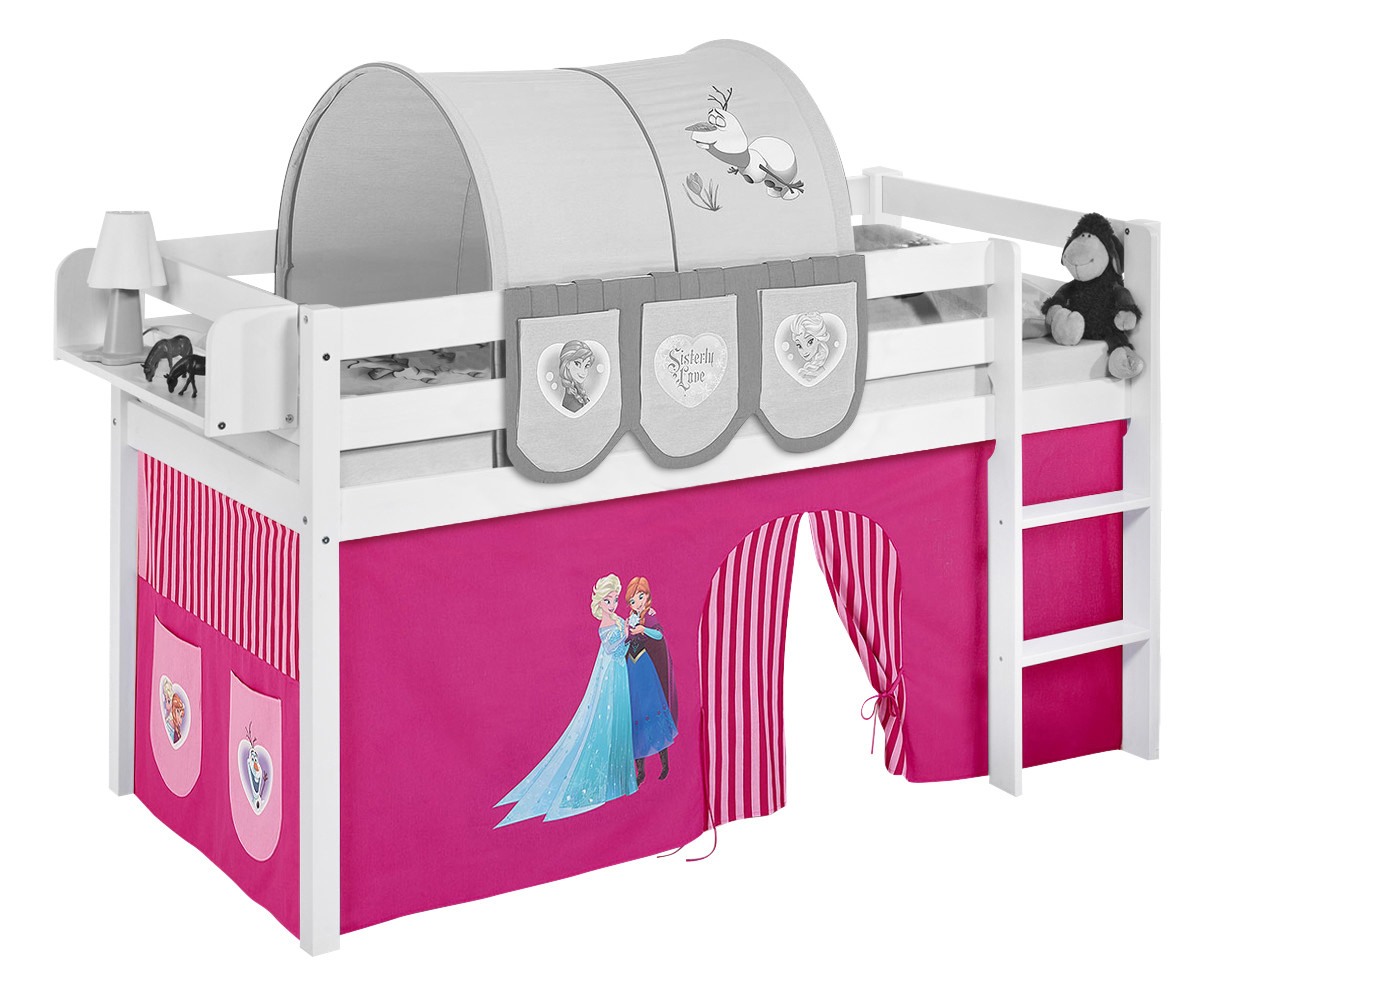 Curtain for midsleeper and bunk bed